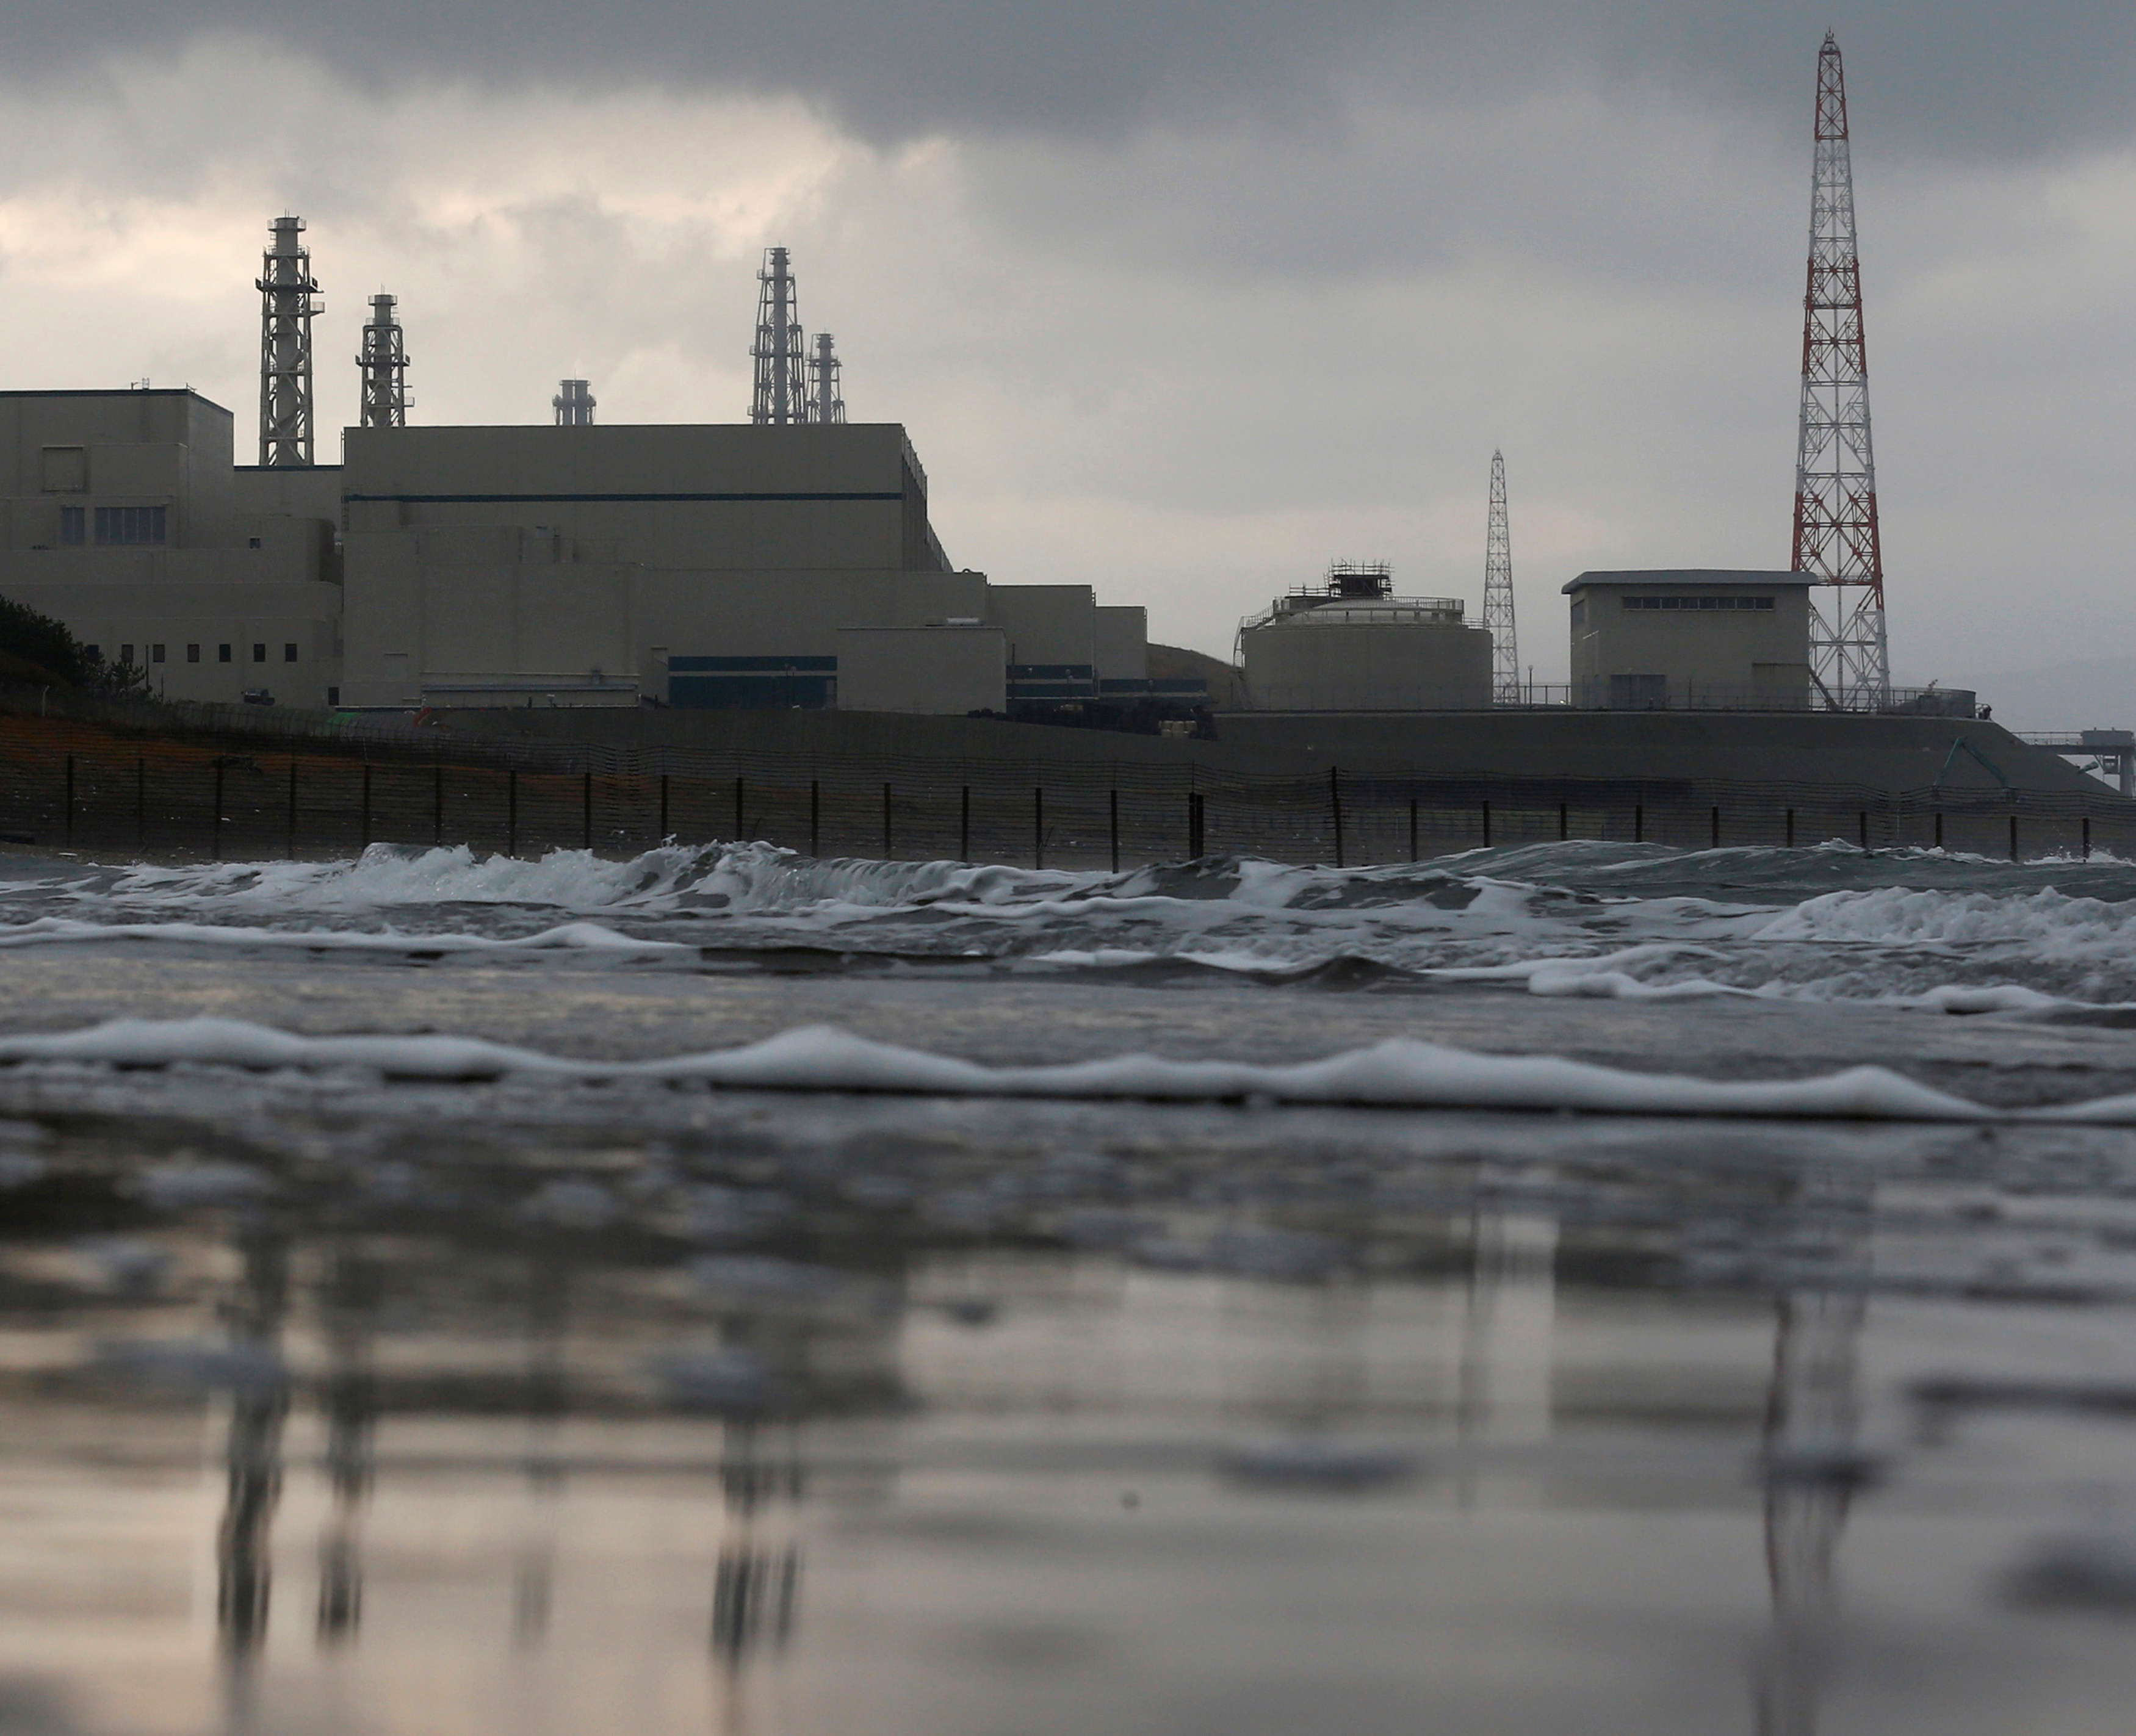 Tokyo Electric Power Co.'s (TEPCO) Kashiwazaki Kariwa nuclear power plant, which is the world's biggest, is seen from a seaside in Kashiwazaki, November 12, 2012.   REUTERS/Kim Kyung-Hoon/File photo